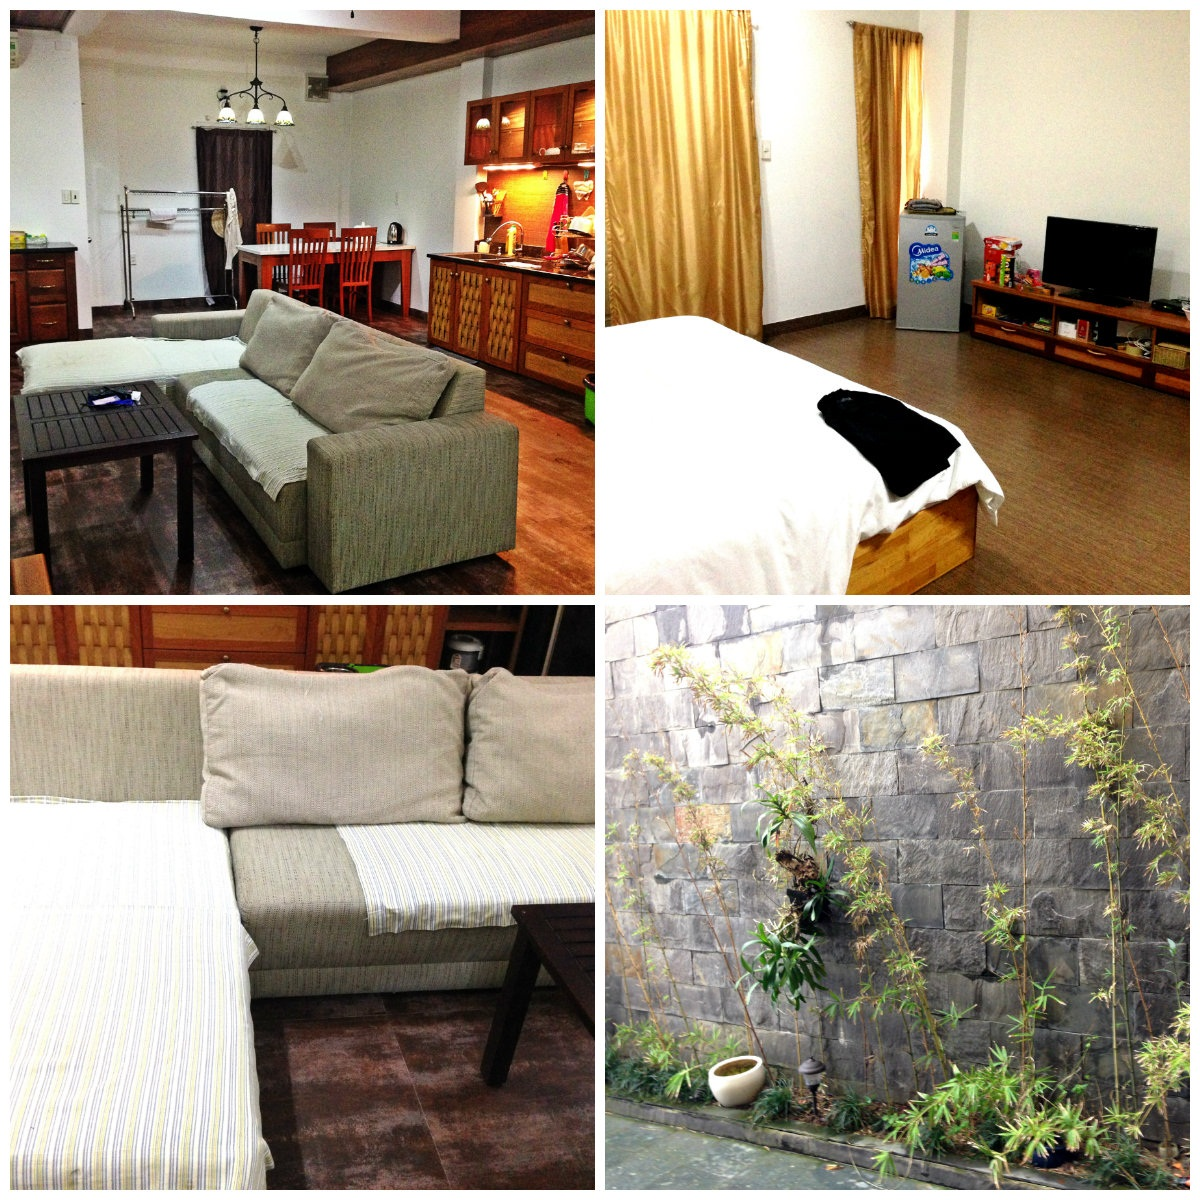 2 bedroom apartment, 90m2  in An Thuong area